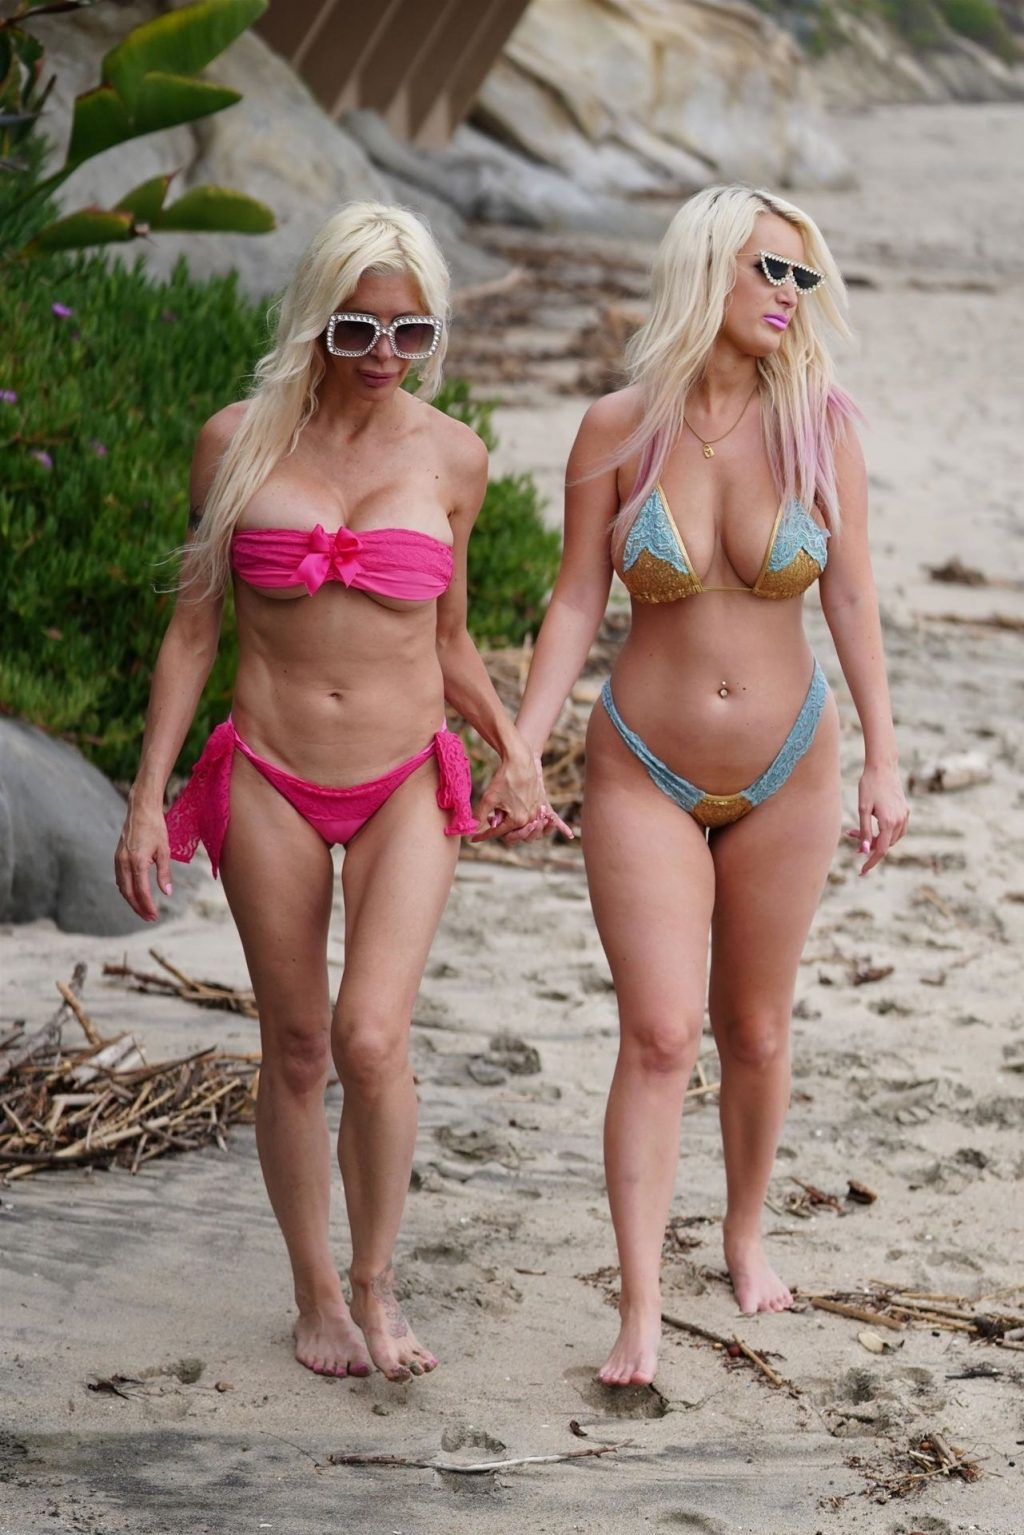 Tiffany Madison & Frenchy Morgan Share a Little Affection in Malibu (31 Photos)